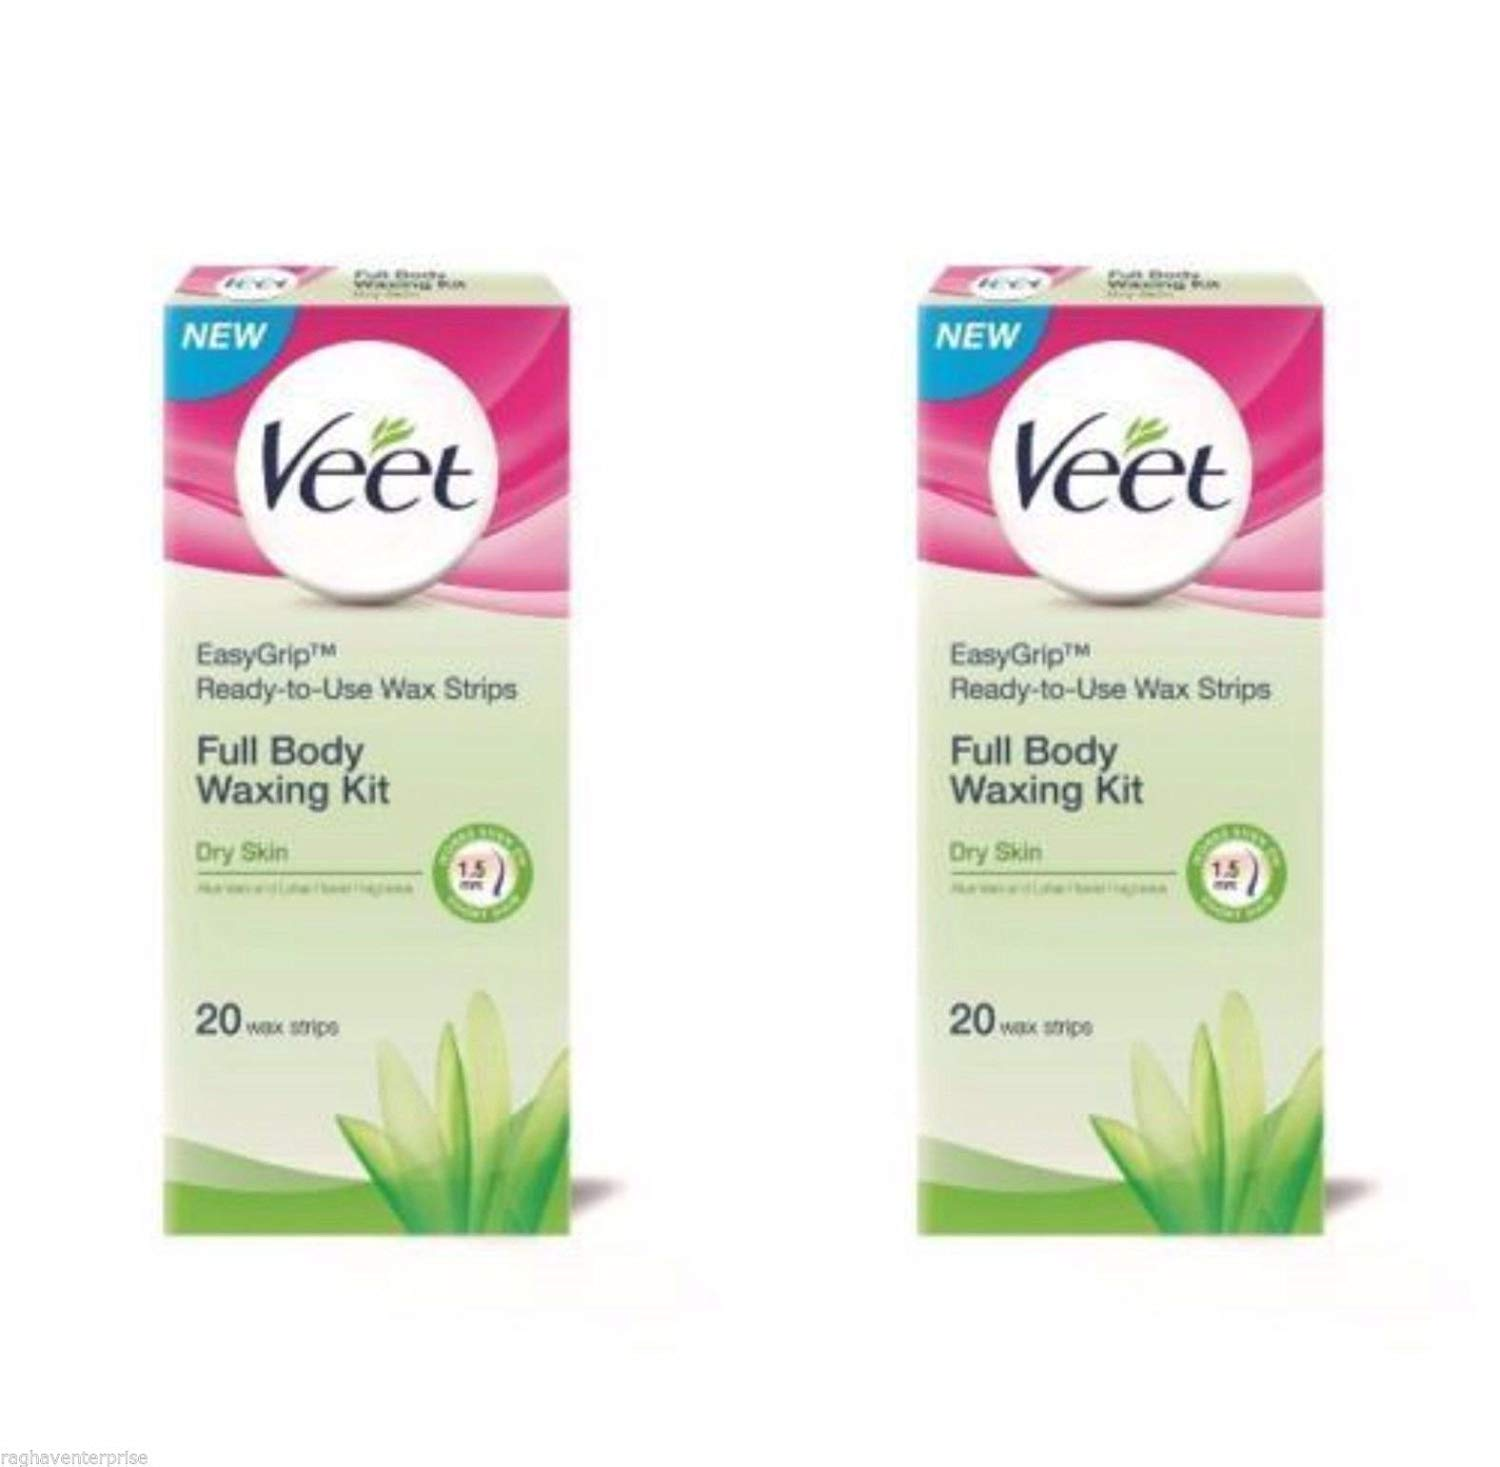 2-X-Veet-Ready-To-Use-Wax-Strips-Full-Body-Waxing-Kit-For-Dry-Skin